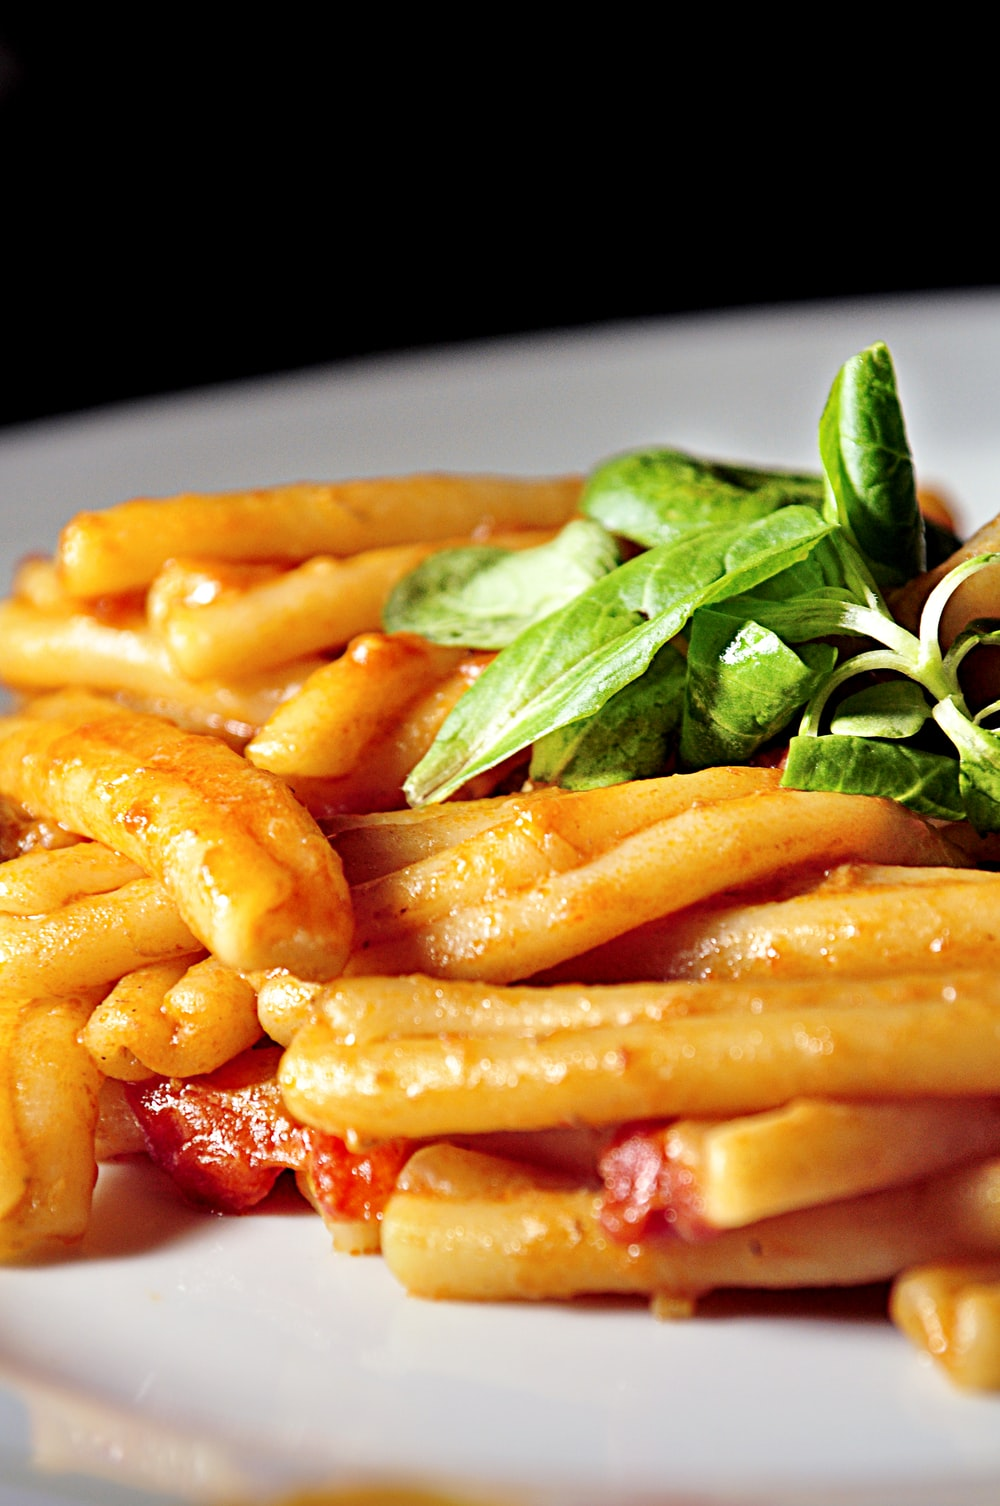 pasta with sauce and leafy greens